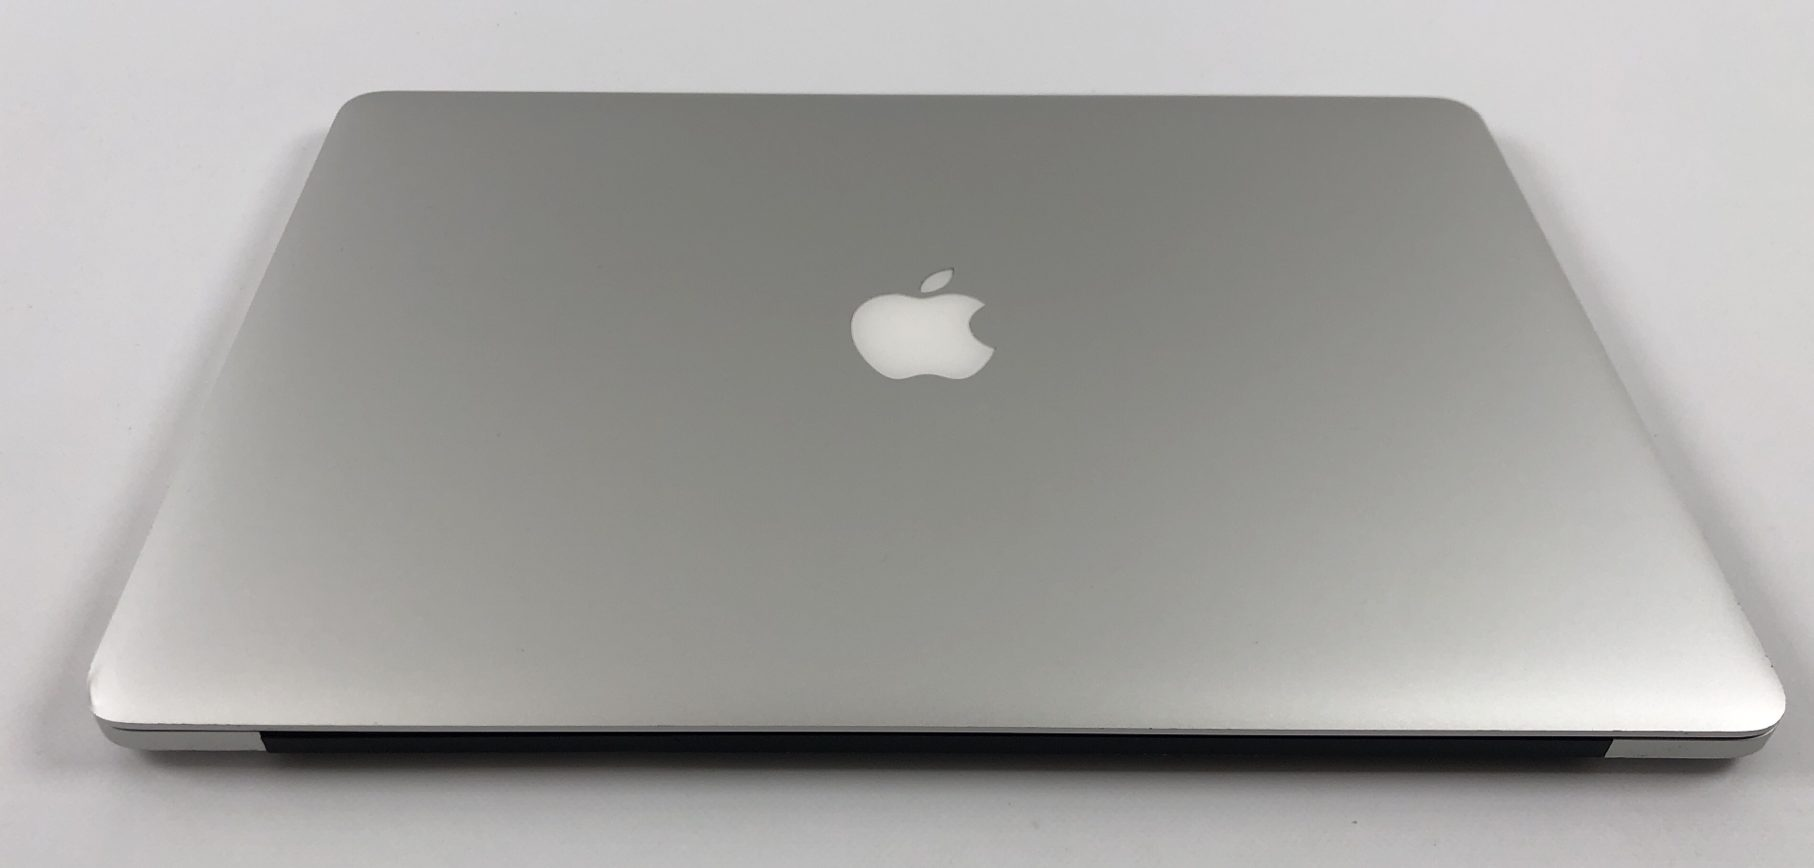 "MacBook Pro Retina 15"" Mid 2015 (Intel Quad-Core i7 2.5 GHz 16 GB RAM 512 GB SSD), Intel Quad-Core i7 2.5 GHz, 16 GB RAM, 512 GB SSD, obraz 2"